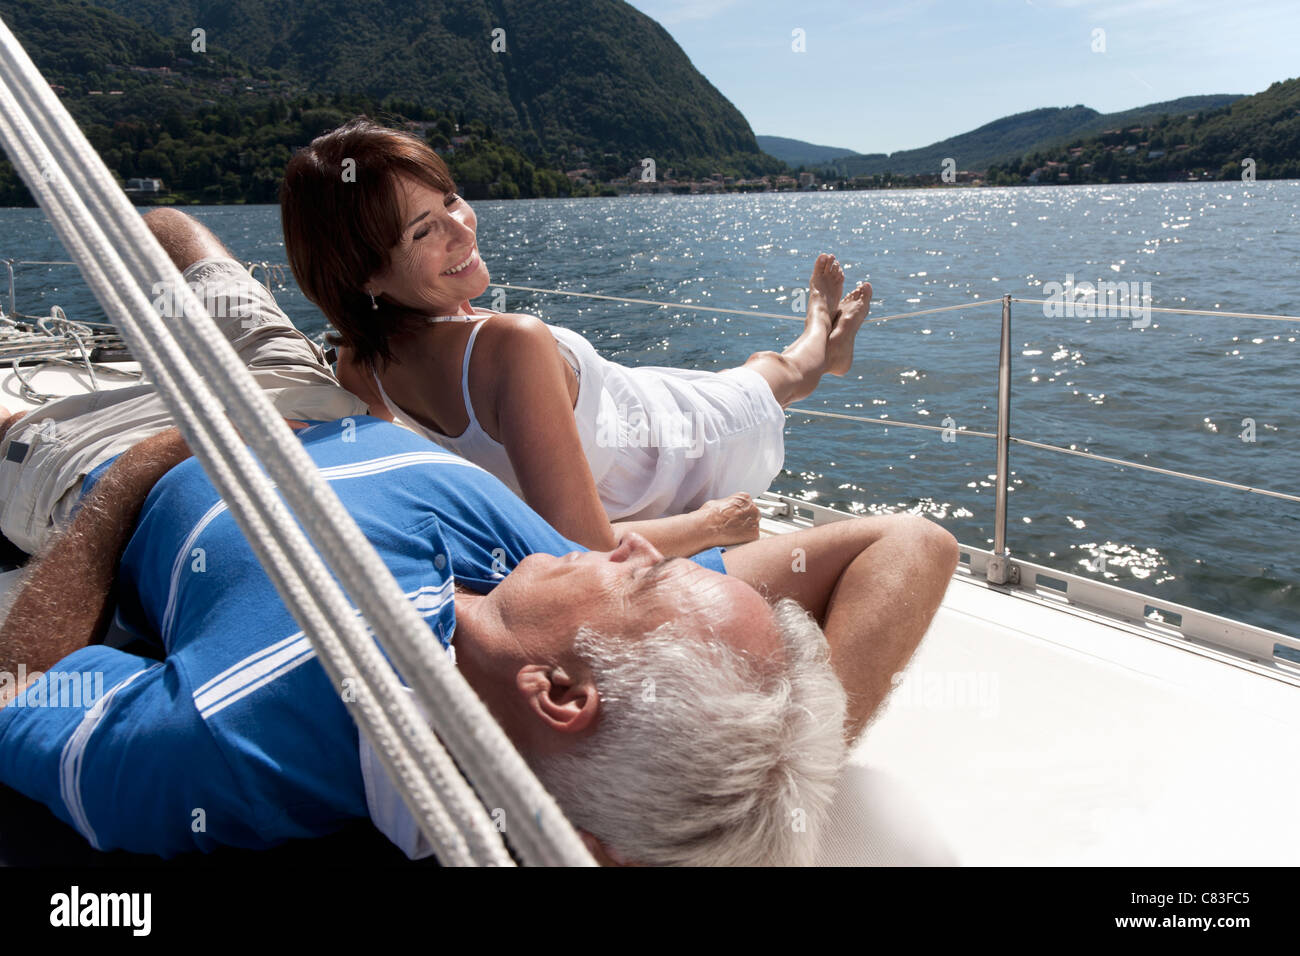 Older couple relaxing on sailboat - Stock Image